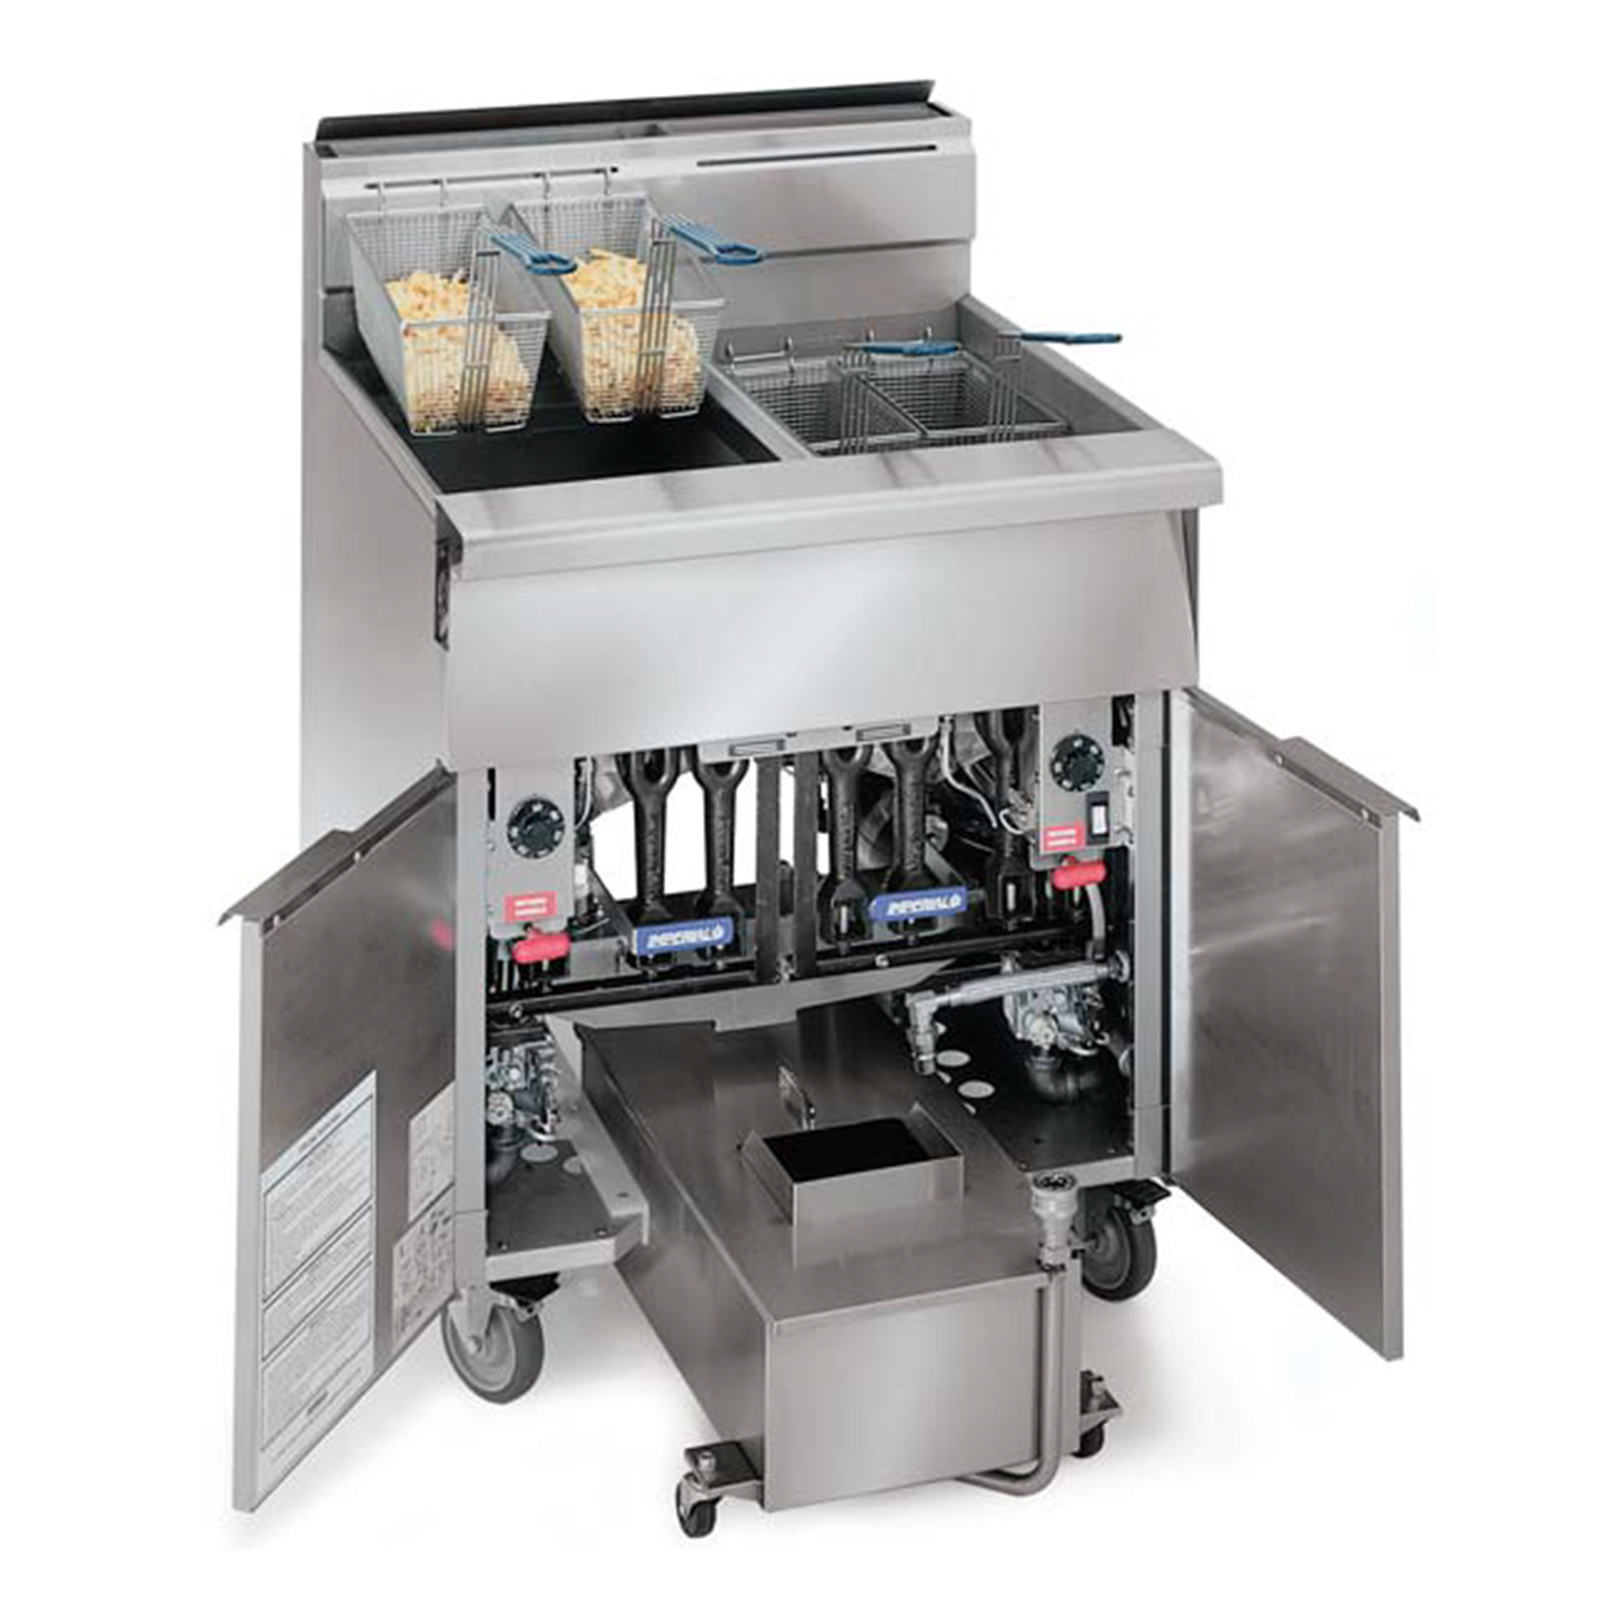 Imperial IHRSP675T fryer, gas, multiple battery